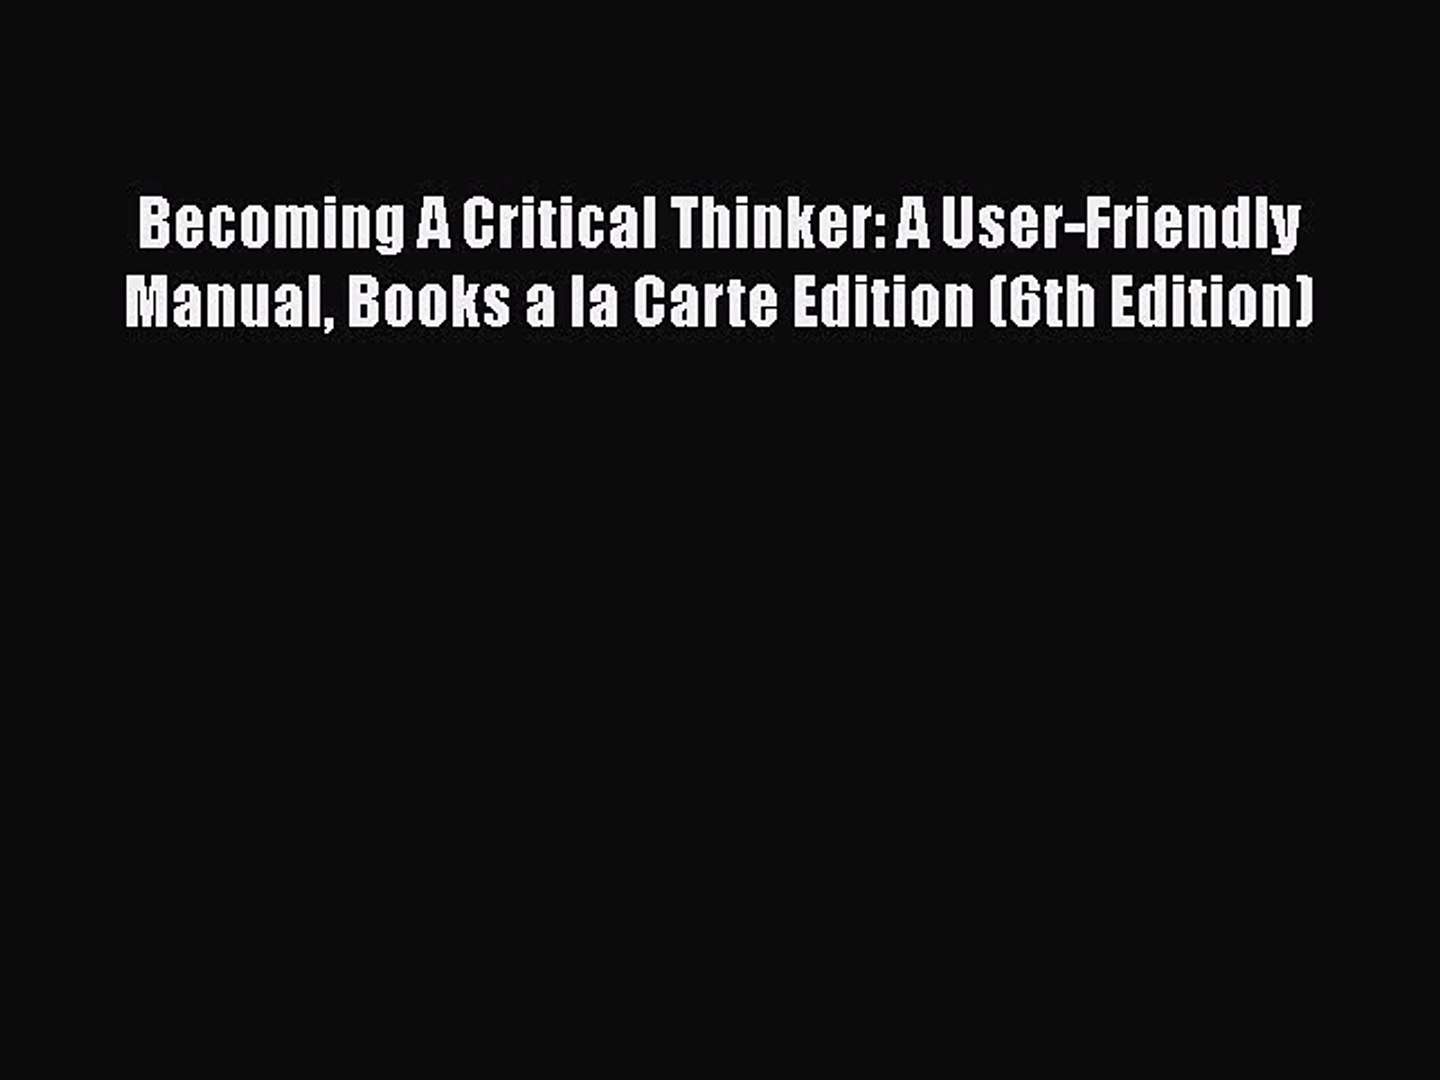 Read Becoming A Critical Thinker: A User-Friendly Manual Books a la Carte Edition (6th Edition)